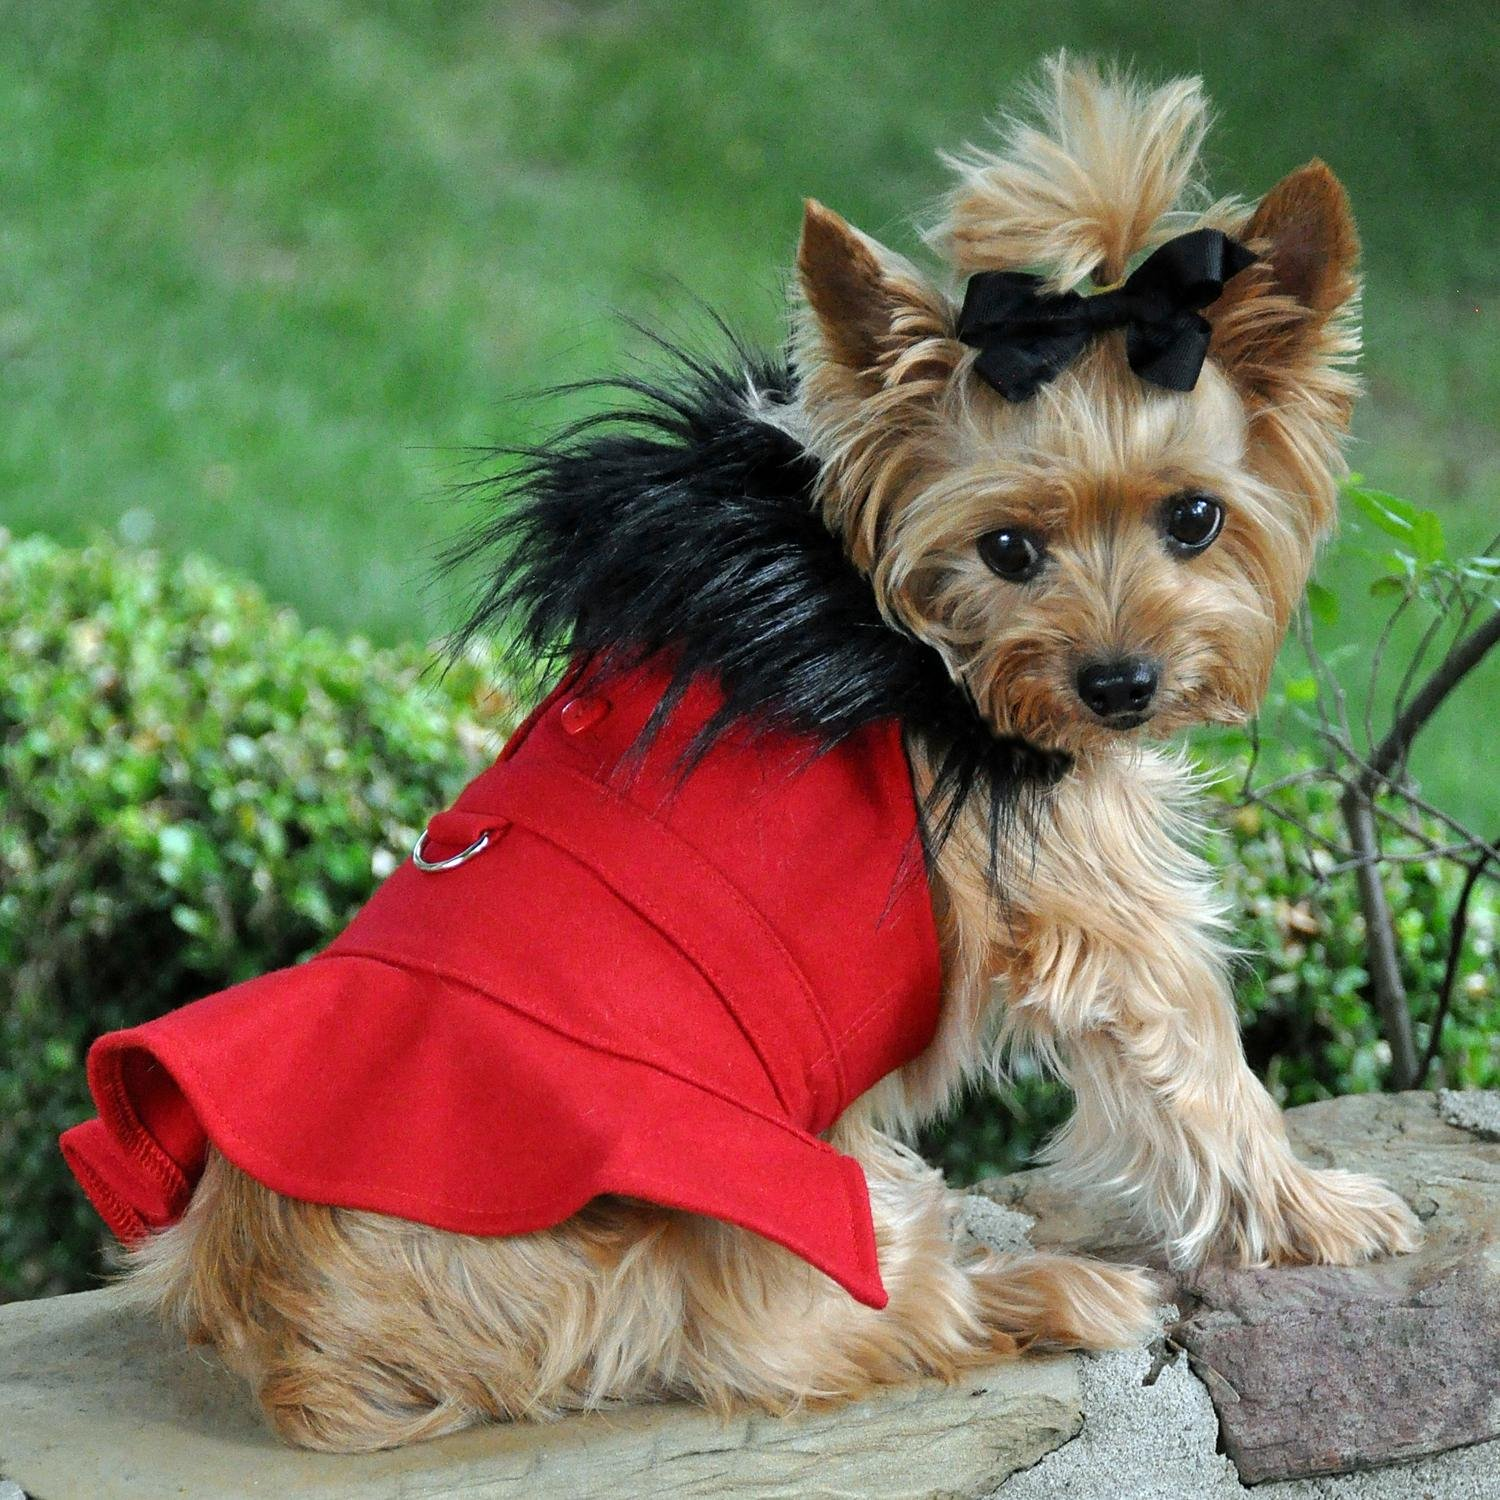 Red XL Red XL Doggie Design Wool Fur Trimmed Dog Harness Coat with Leash (XL, Red)